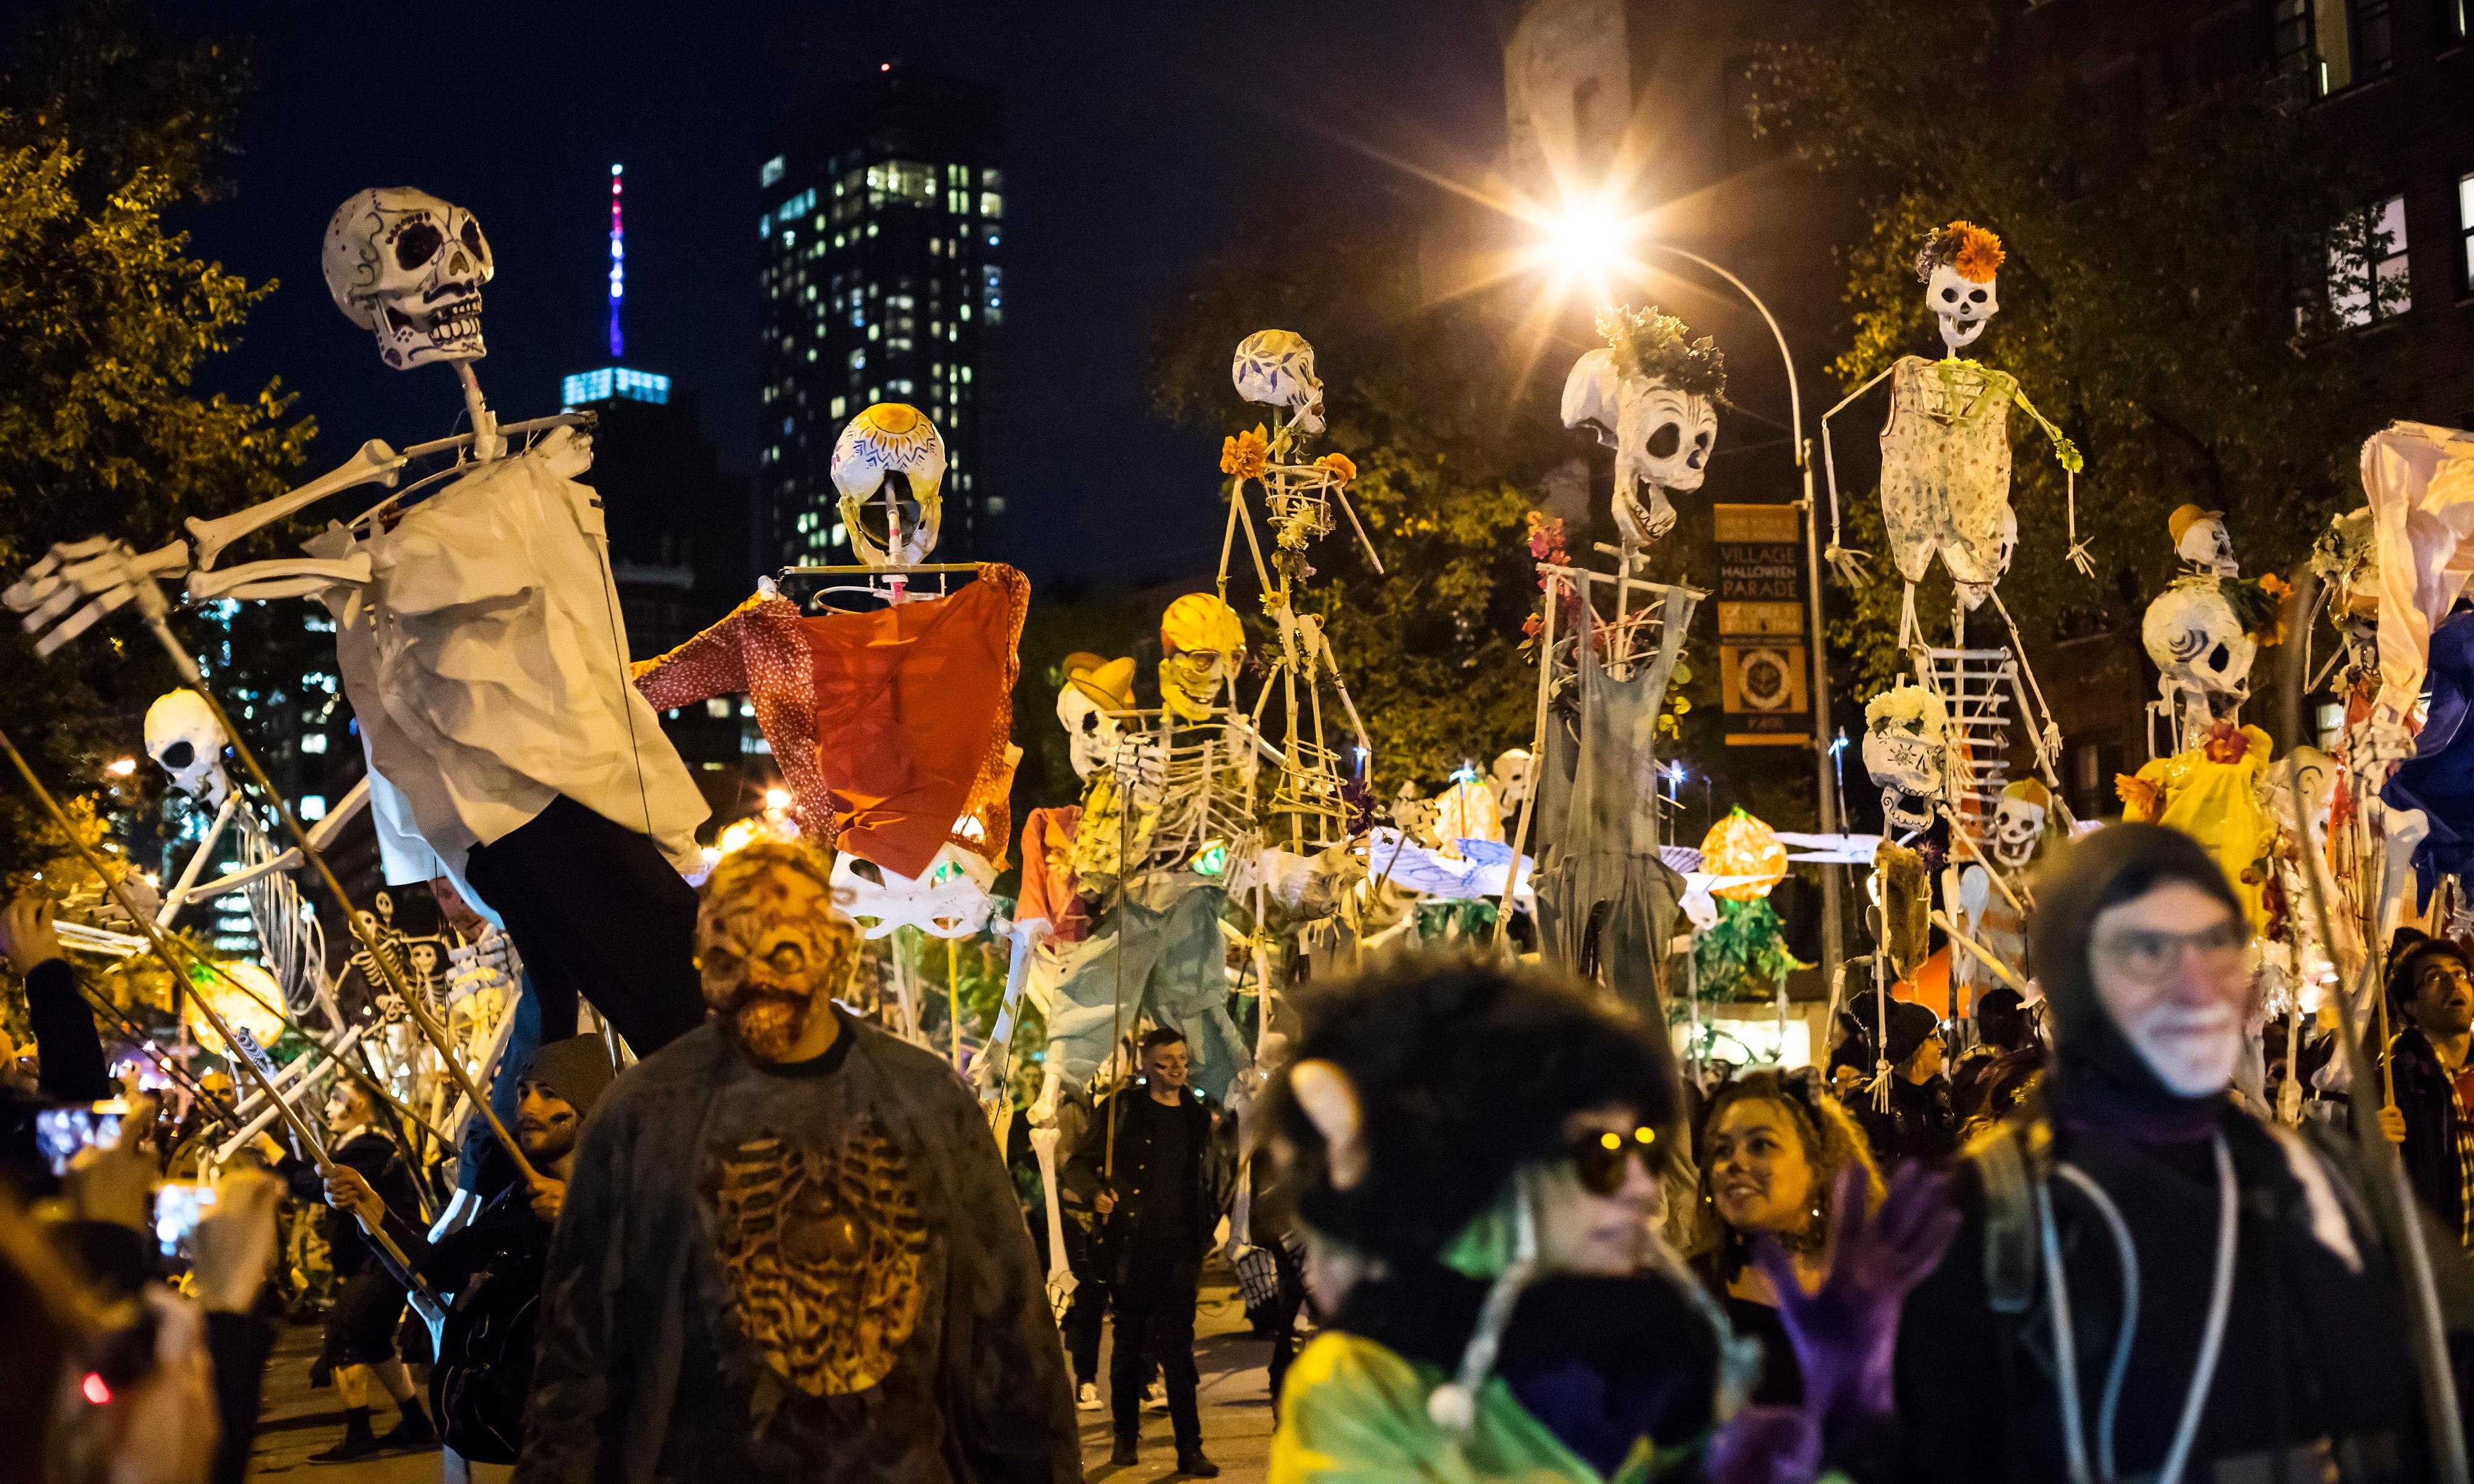 Vampire state of mind: how to join the world's greatest Halloween parade